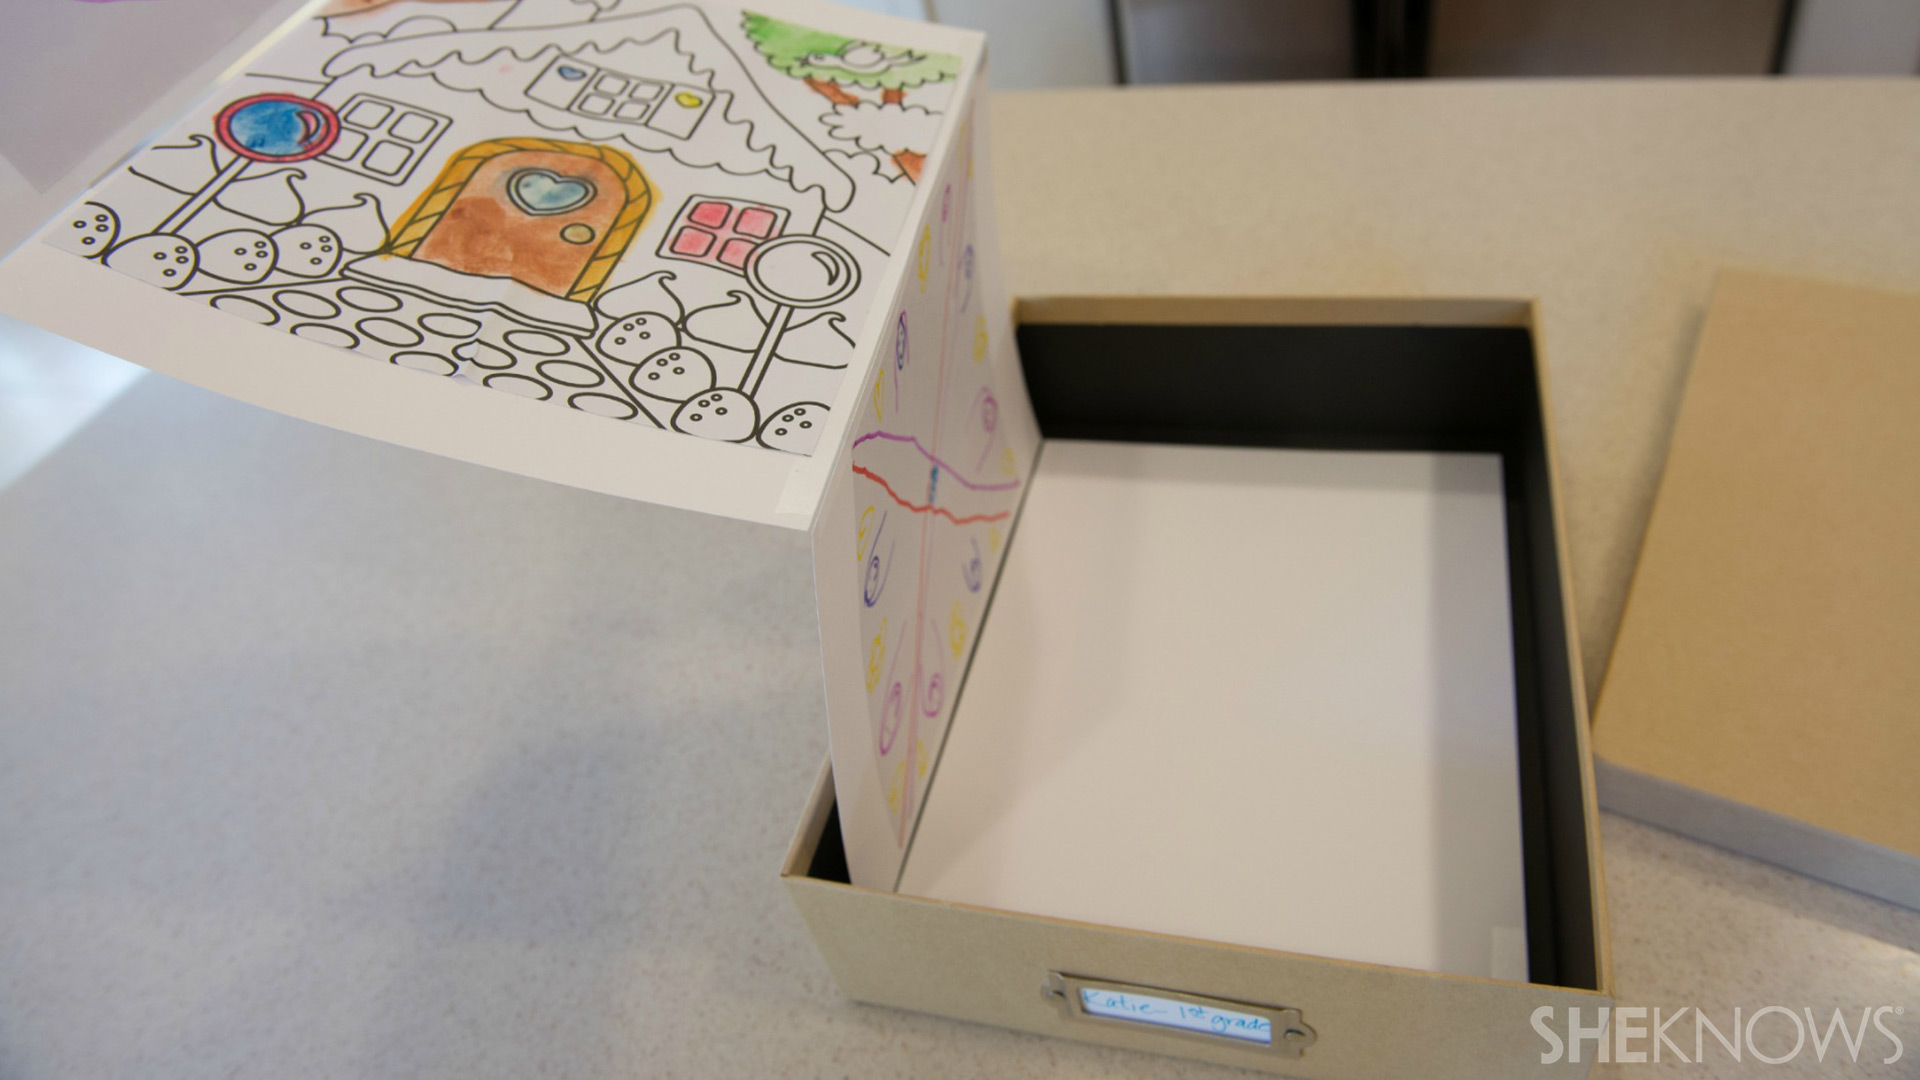 School project storage box | Sheknows.com - attach to box